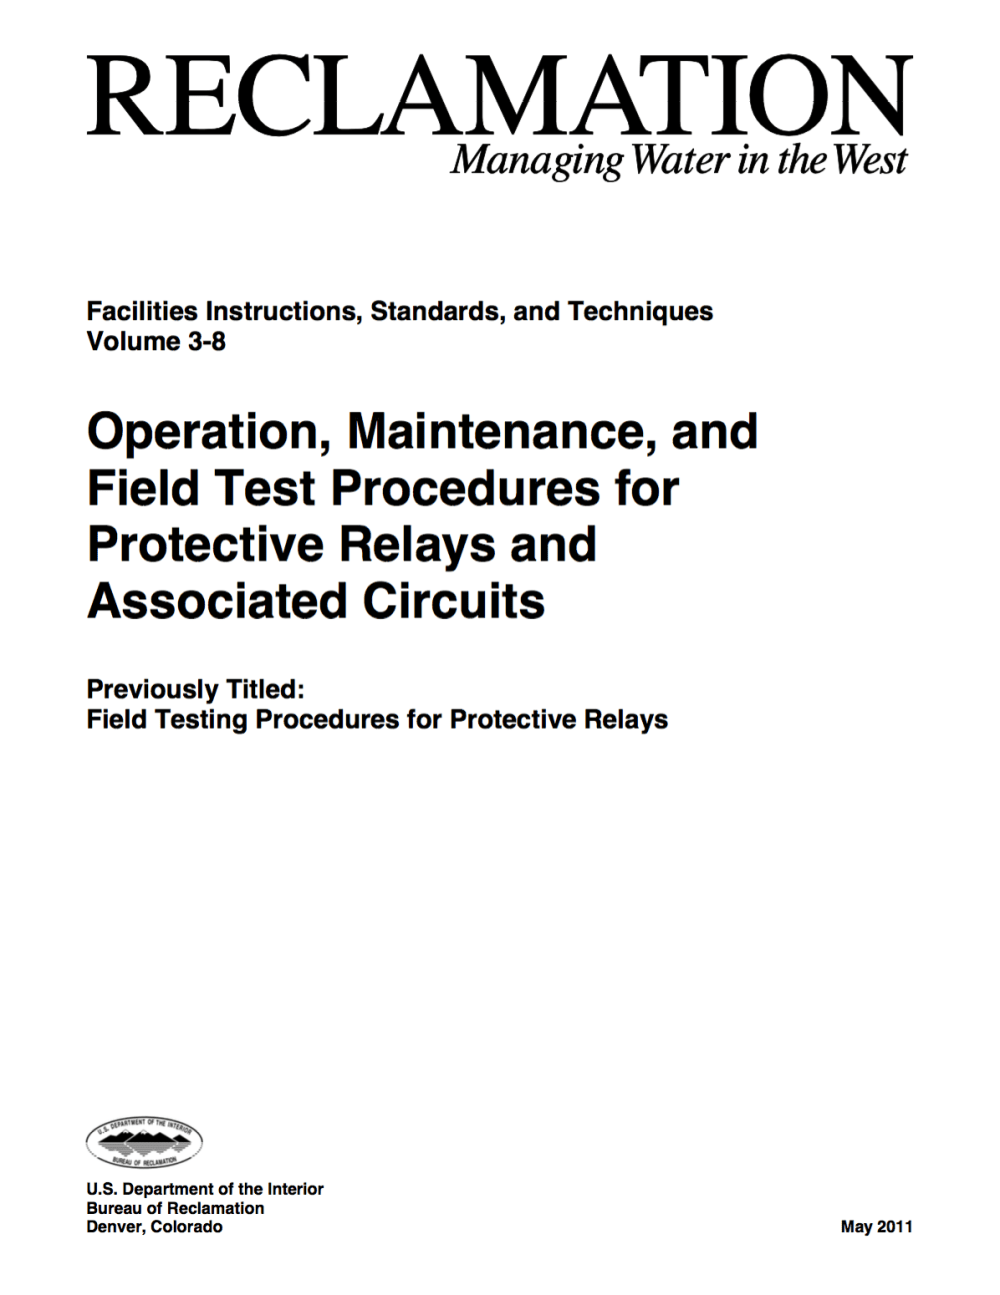 medium resolution of operation maintenance and field test procedures for protective relays and associated circuits u s